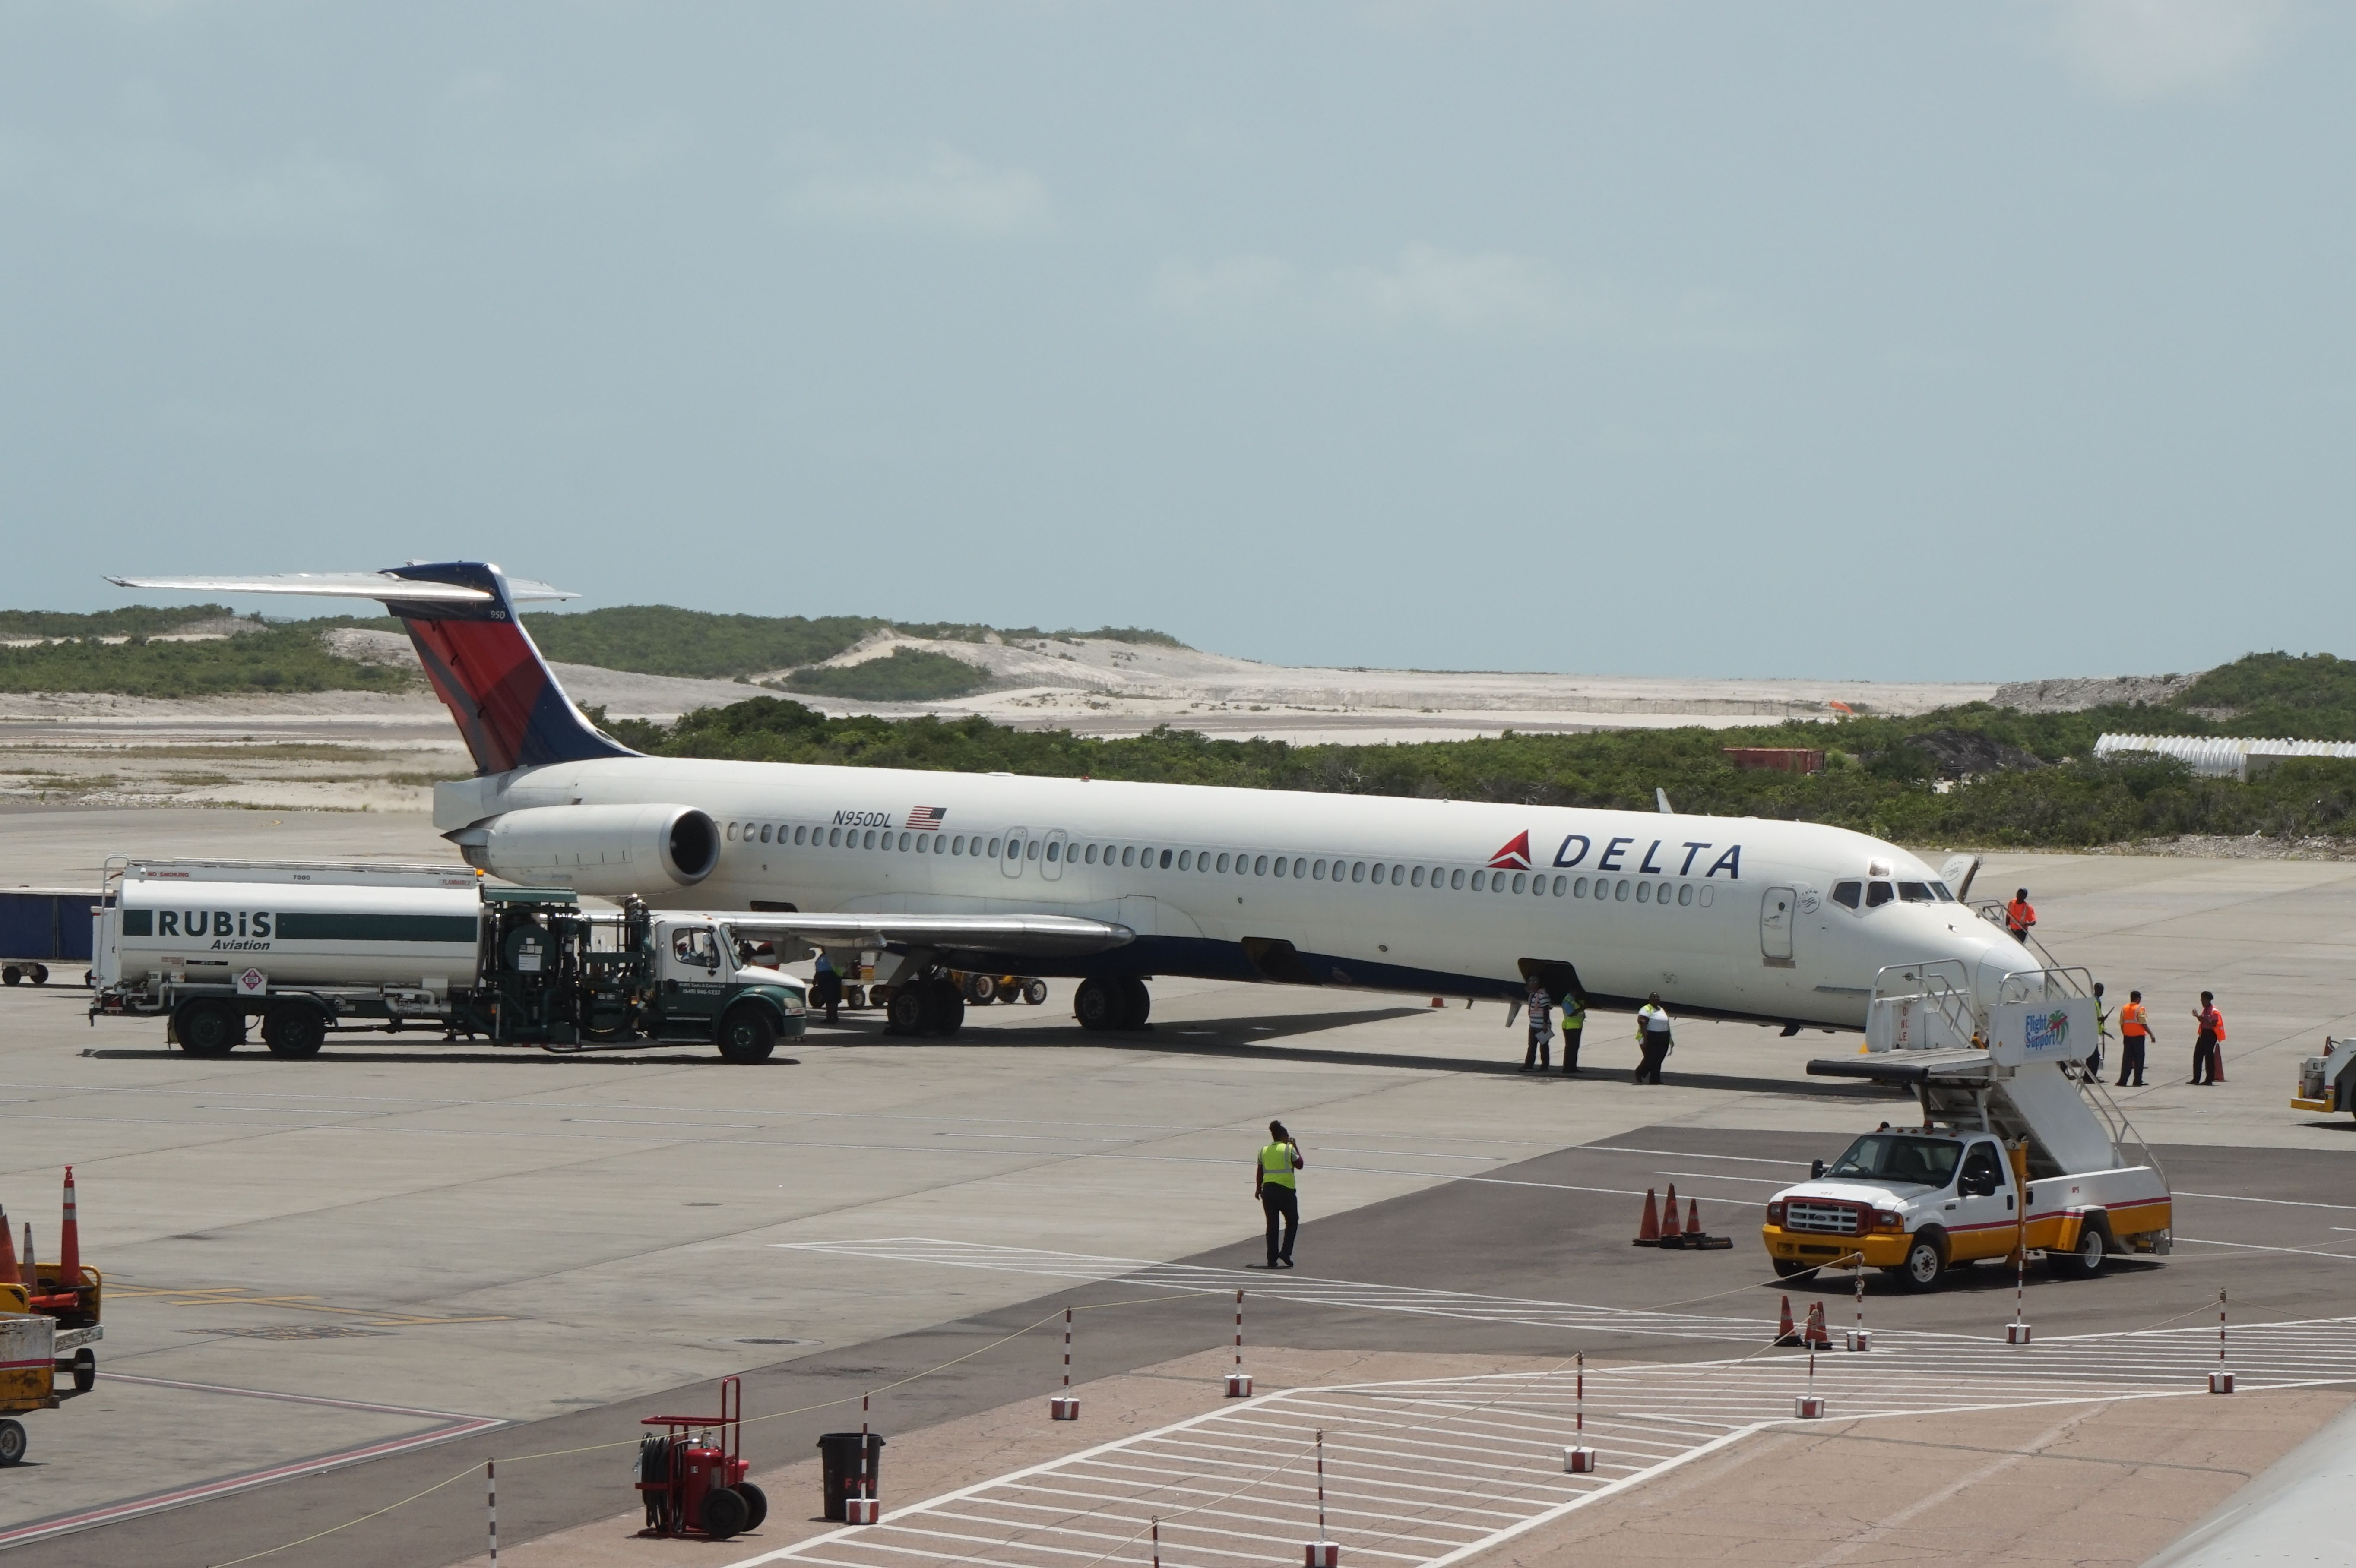 Delta MD-80 at Providenciales International Airport